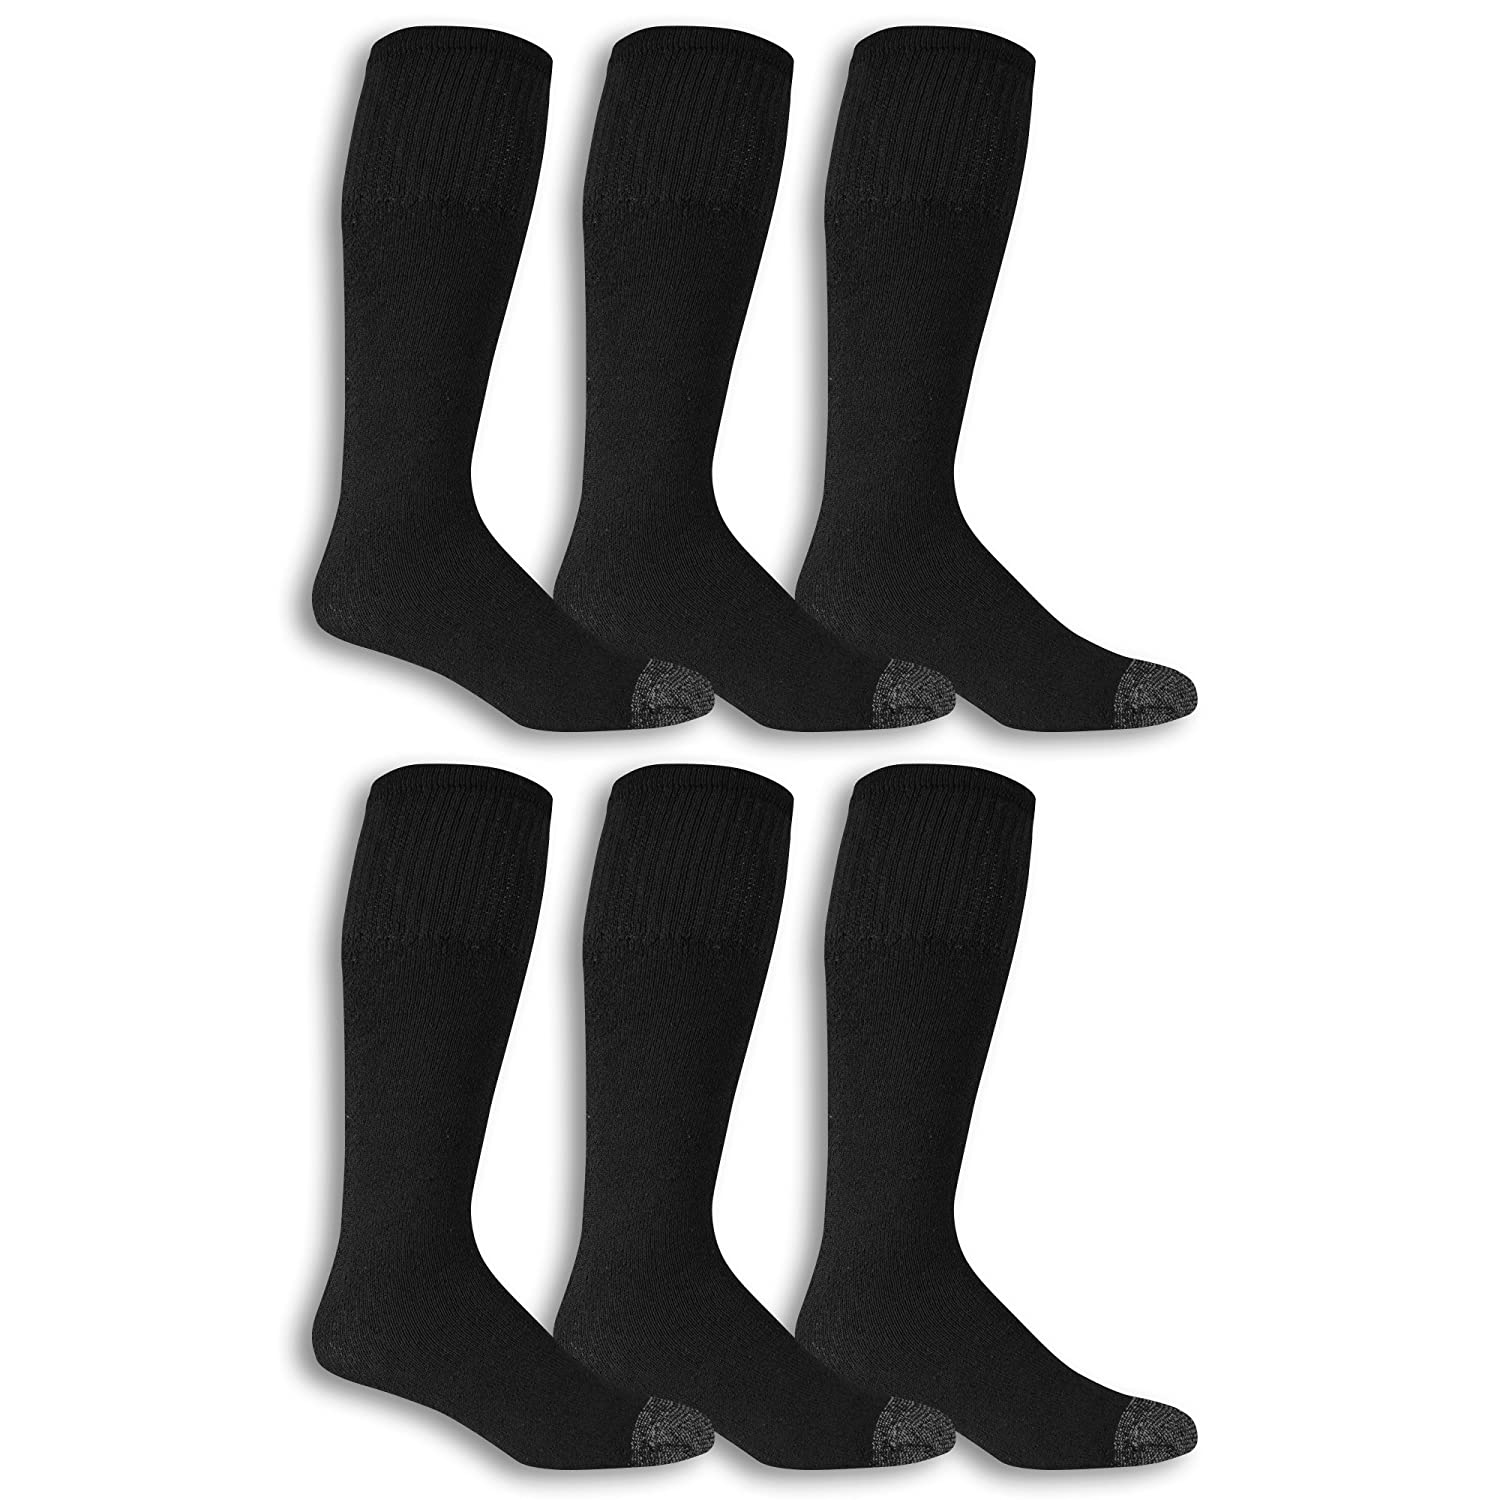 Cushioned Fruit of the Loom Mens Cotton Work Gear Tube Socks Wicking Durable 10 Pack